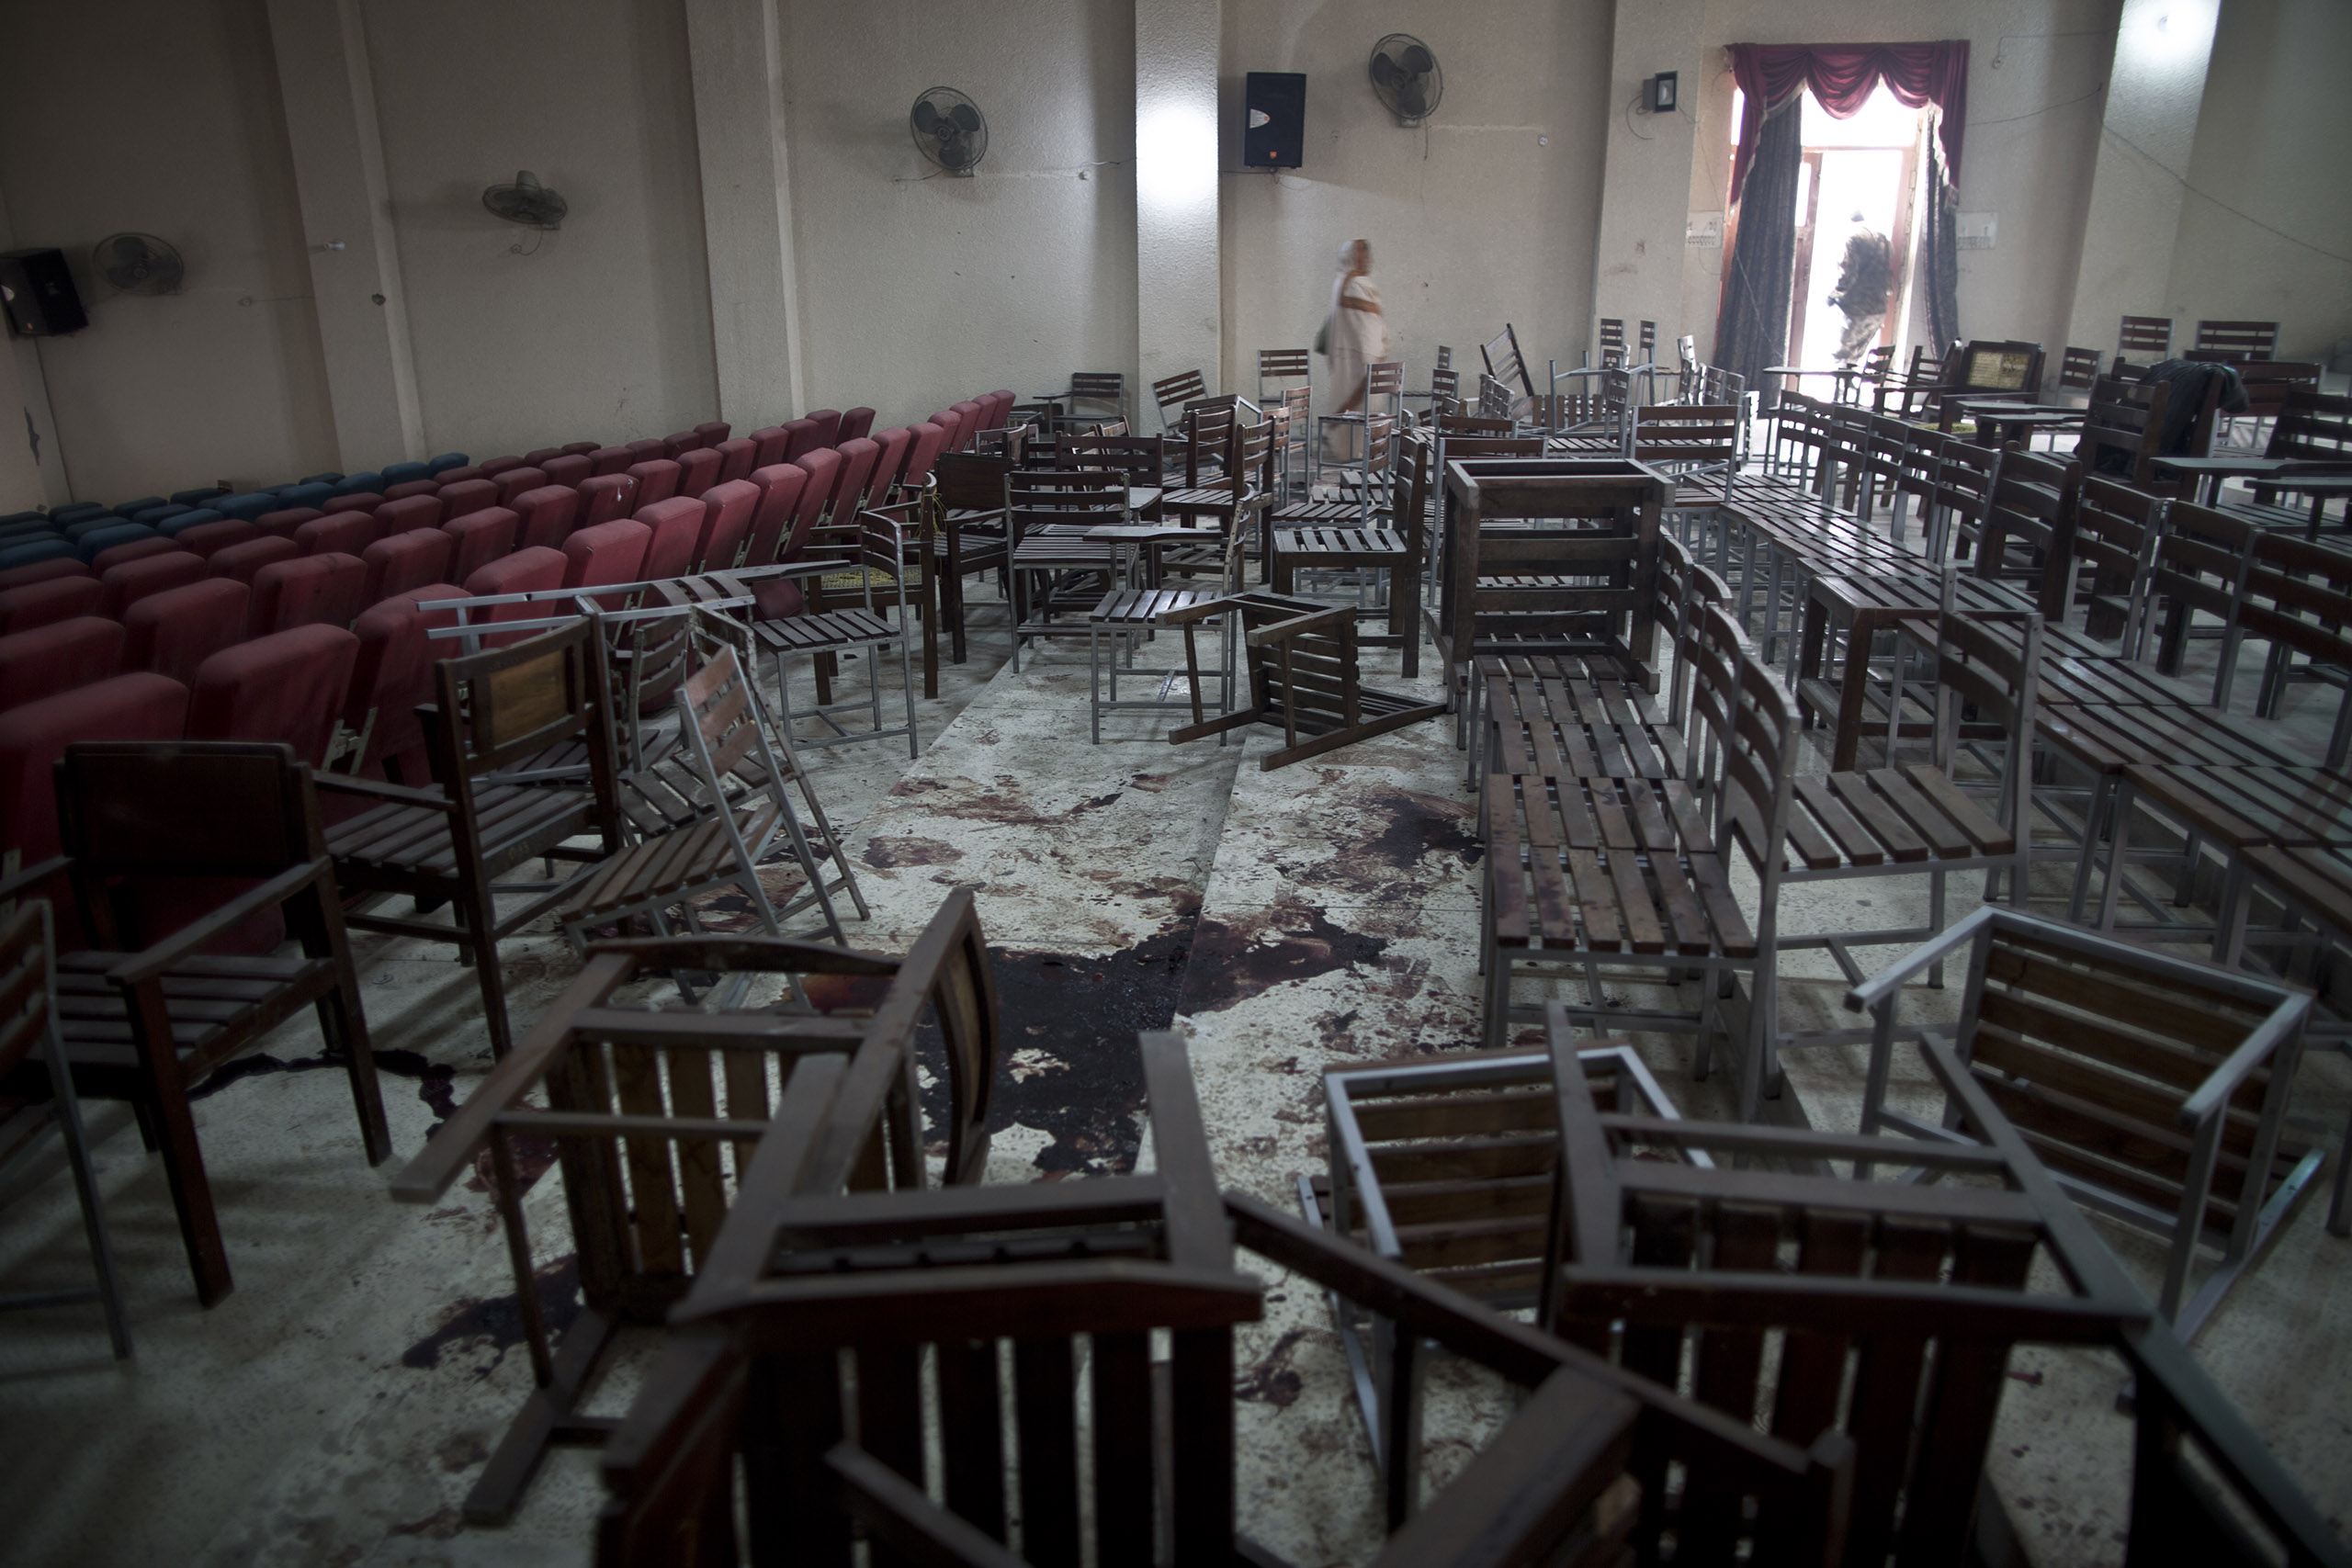 Chairs in the auditorium are overturned and the floor is stained with blood after the Pakistani Taliban attacked the Army Public School on Dec. 16. Peshawar, Pakistan. Dec. 18, 2014.